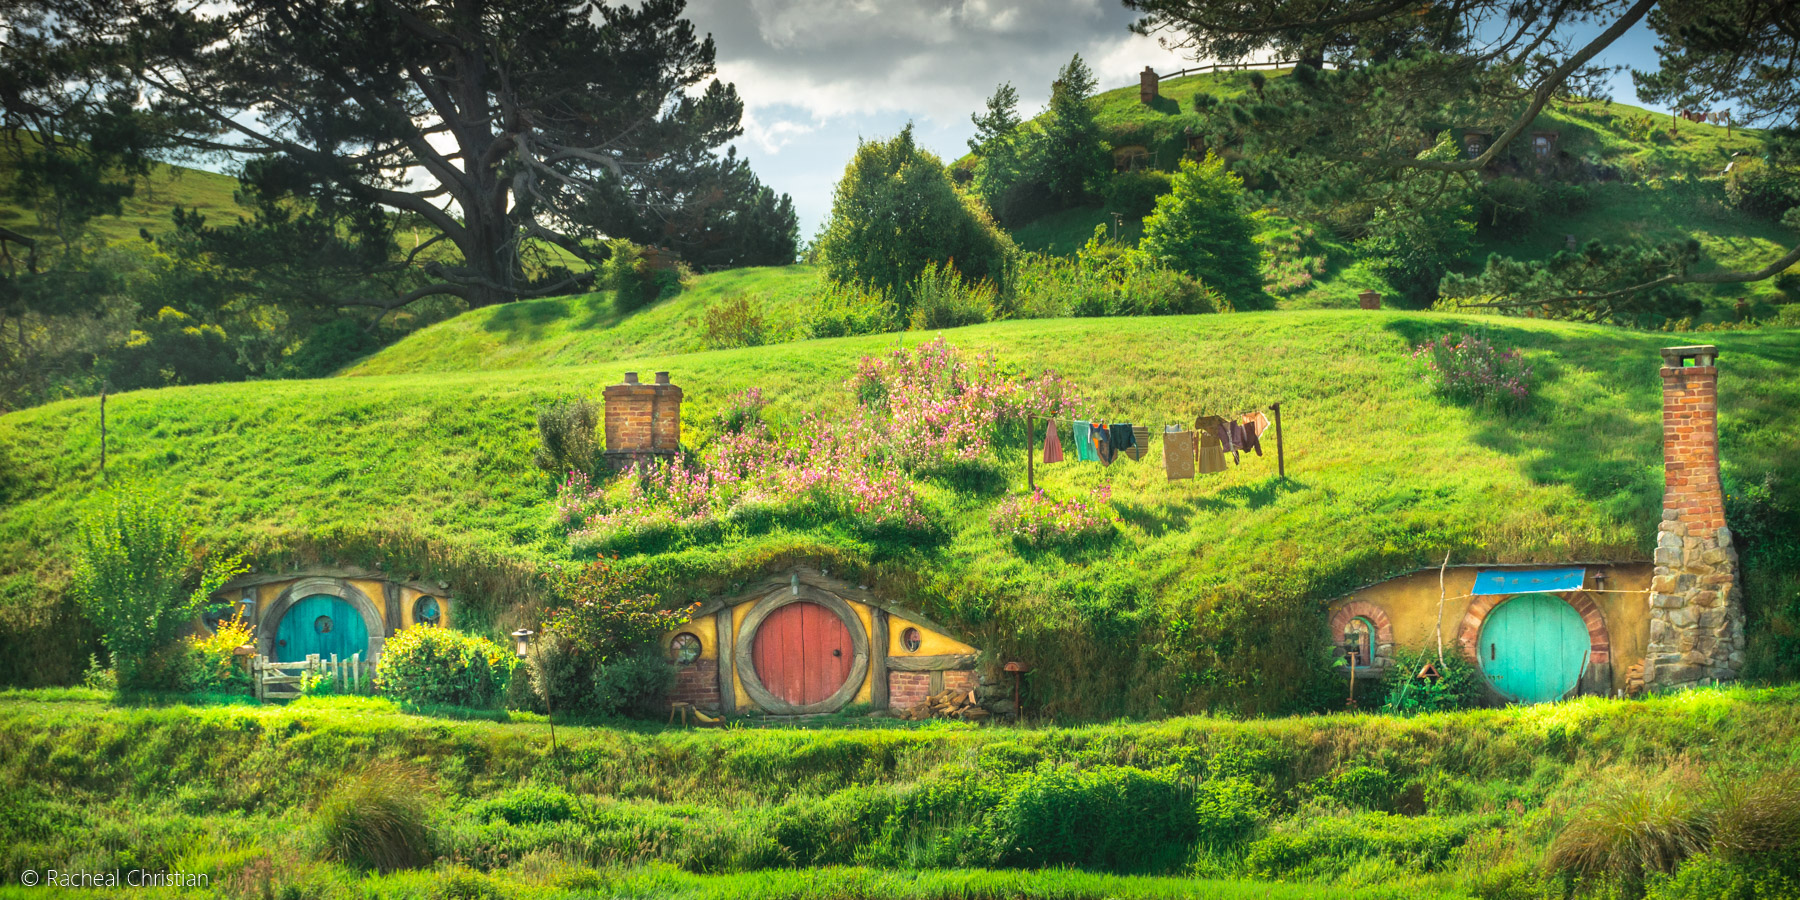 Hobbit Lane - Hobbiton by Racheal Christian -